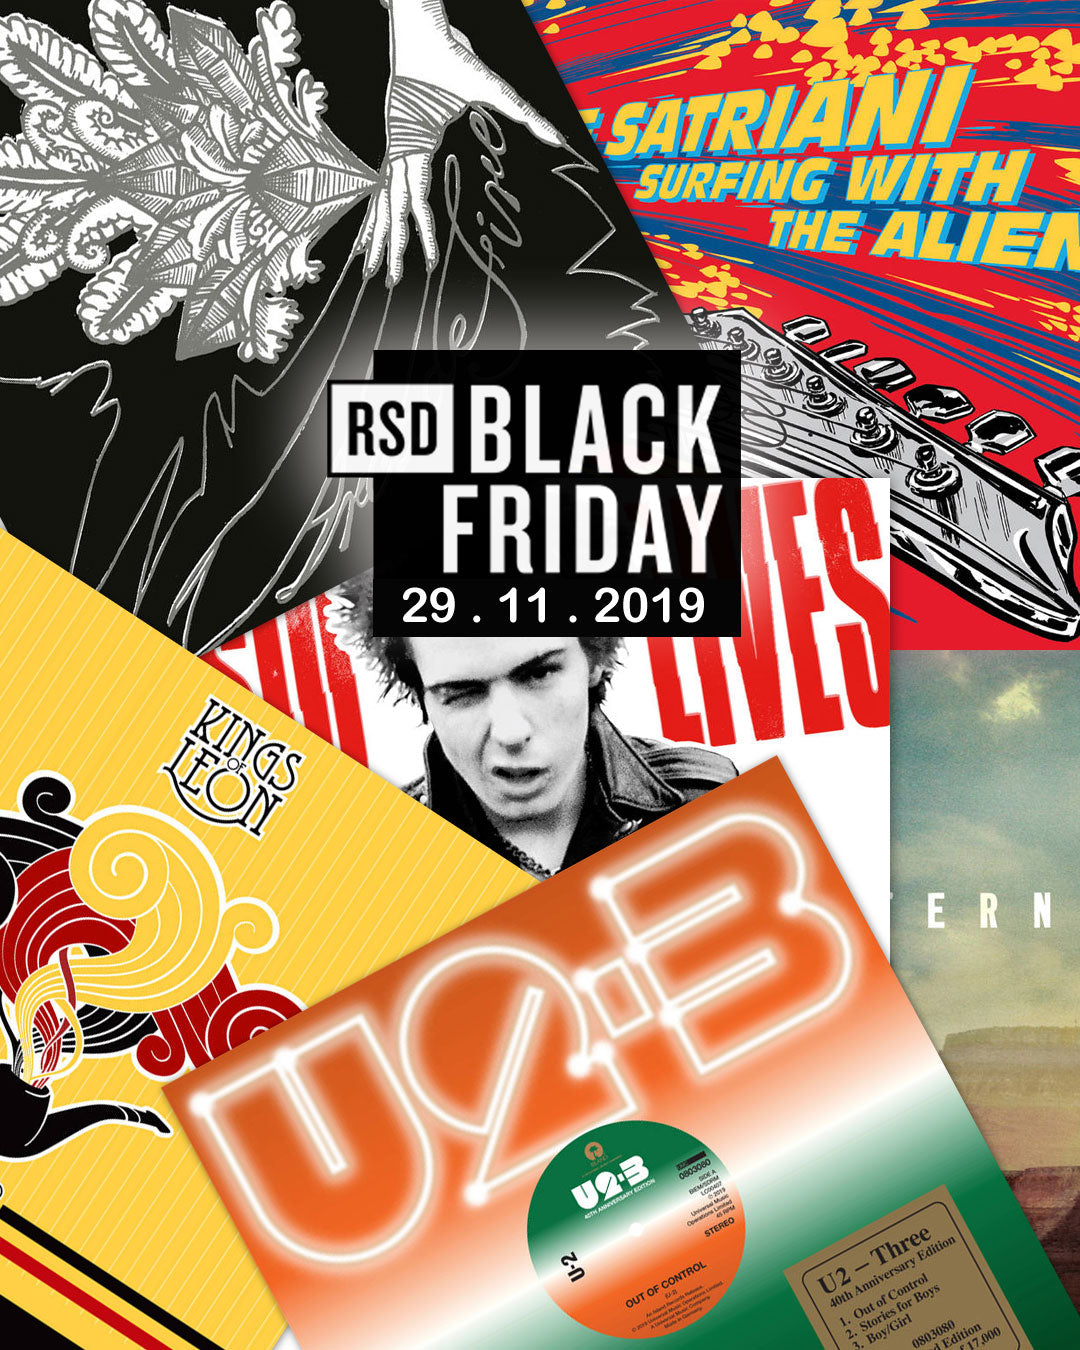 RSD Black Friday 2019